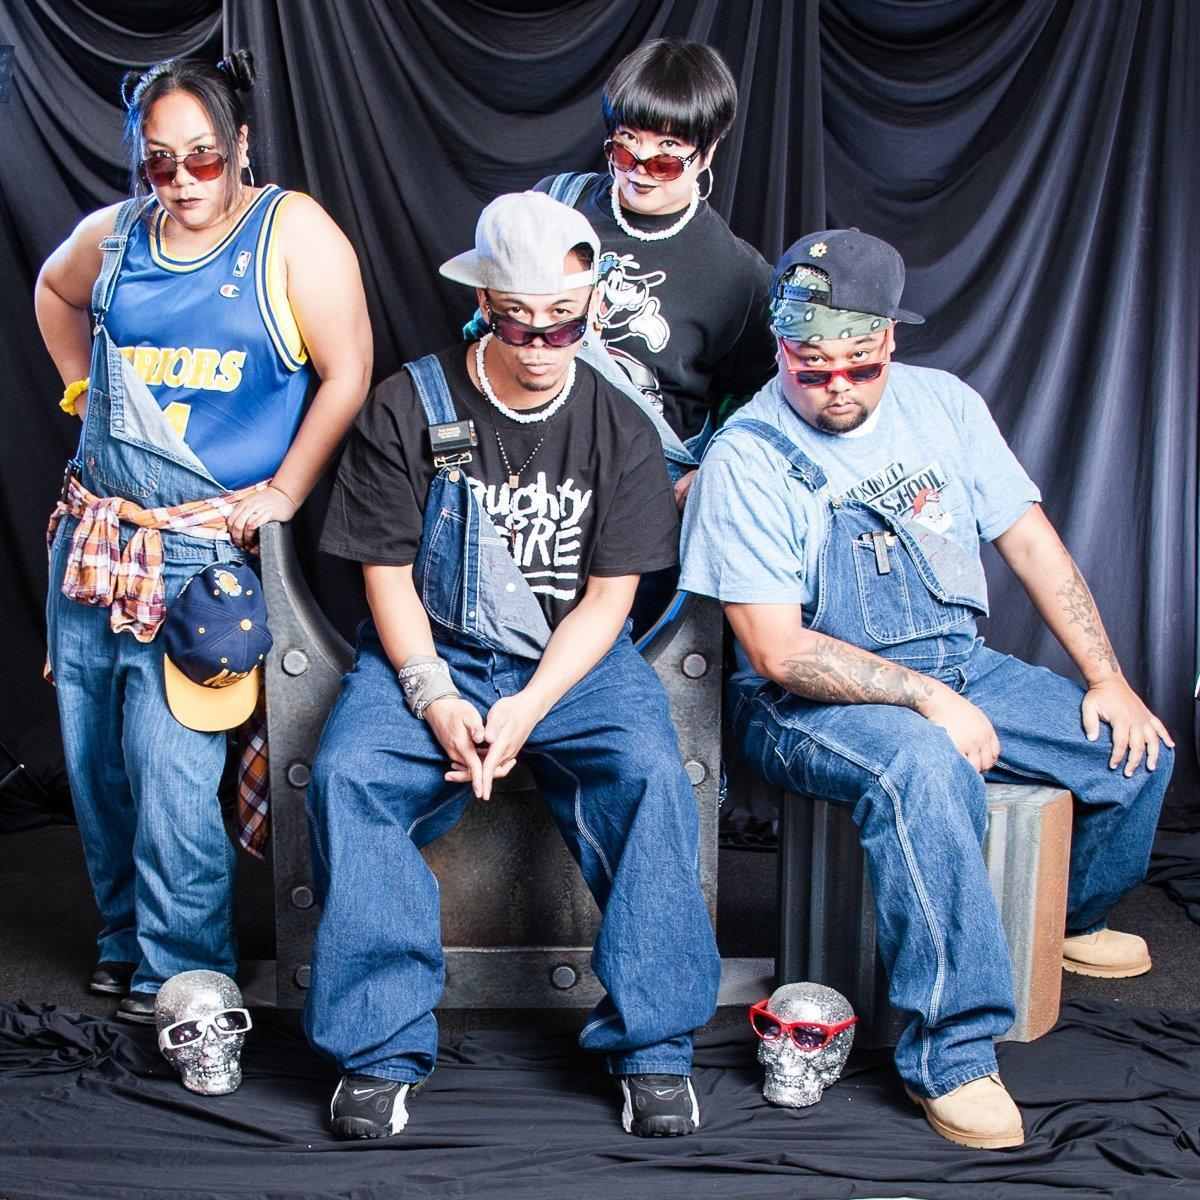 Group of people wearing 1990s hip-hop fashion and overalls